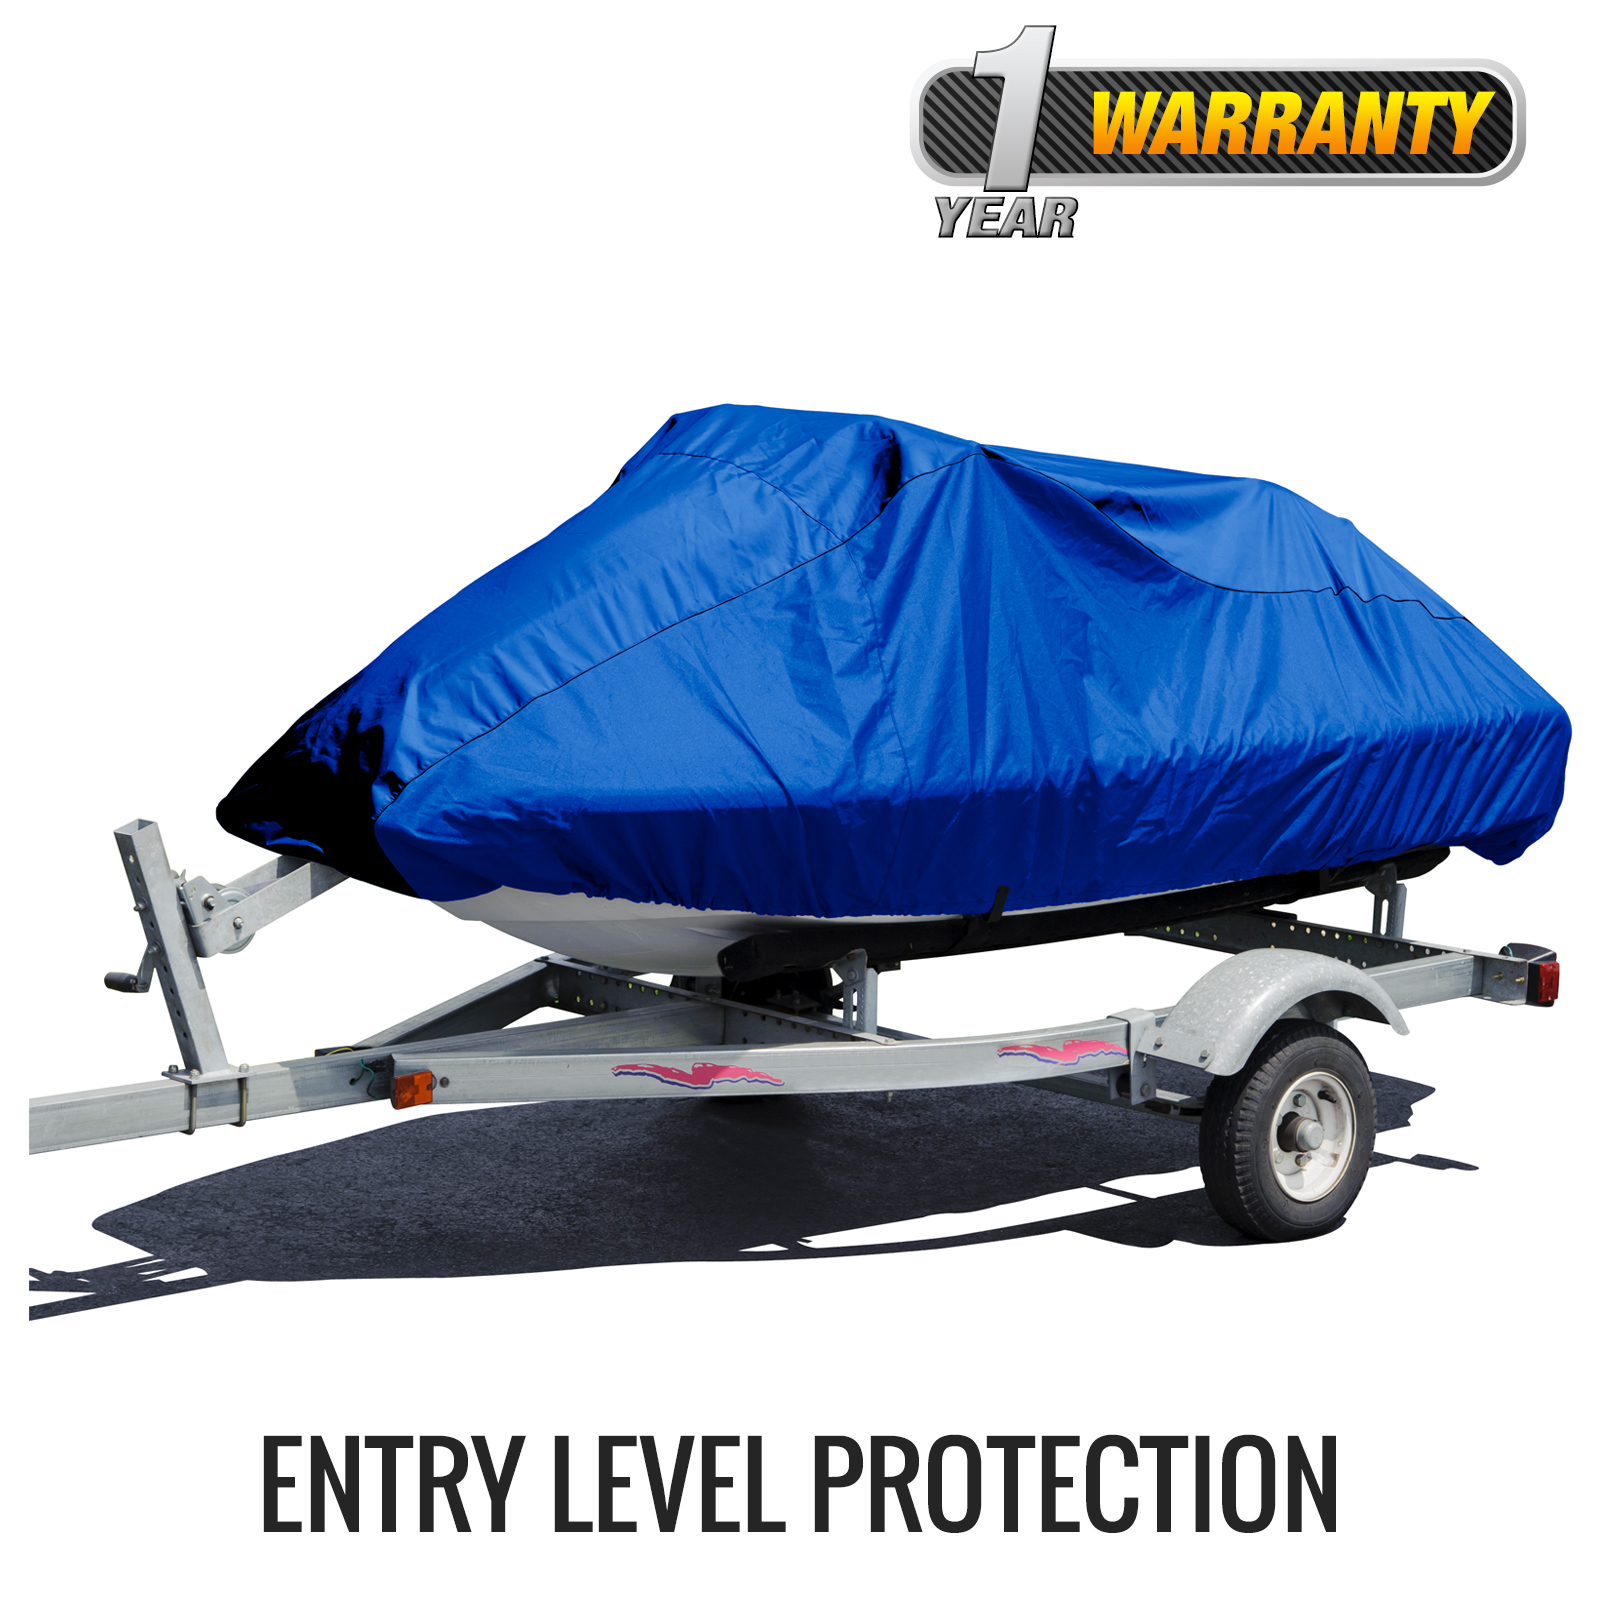 "Budge 2 Stroke Jet Ski Cover, Size PW-2: 116"" to 135"" 2-Stroke by Budge Industries"